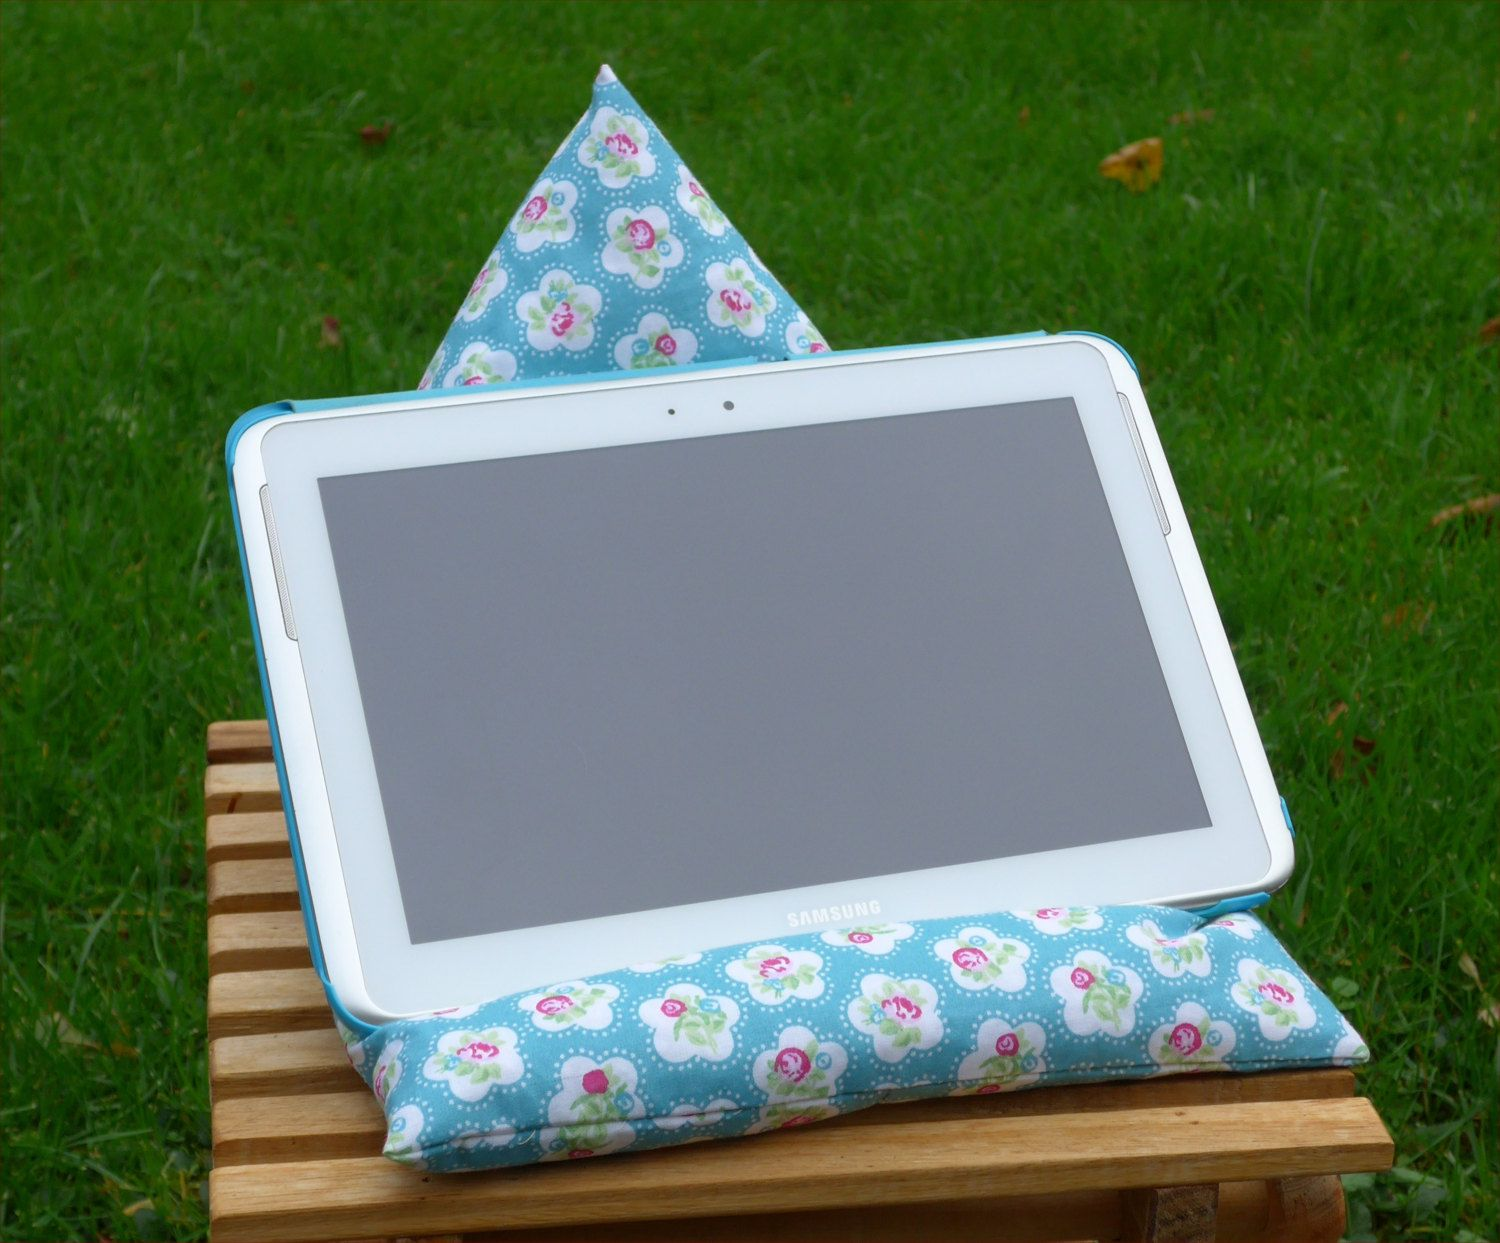 Handmade Ipad Beanbag Cushion Tablet Stand Kindle Pillow